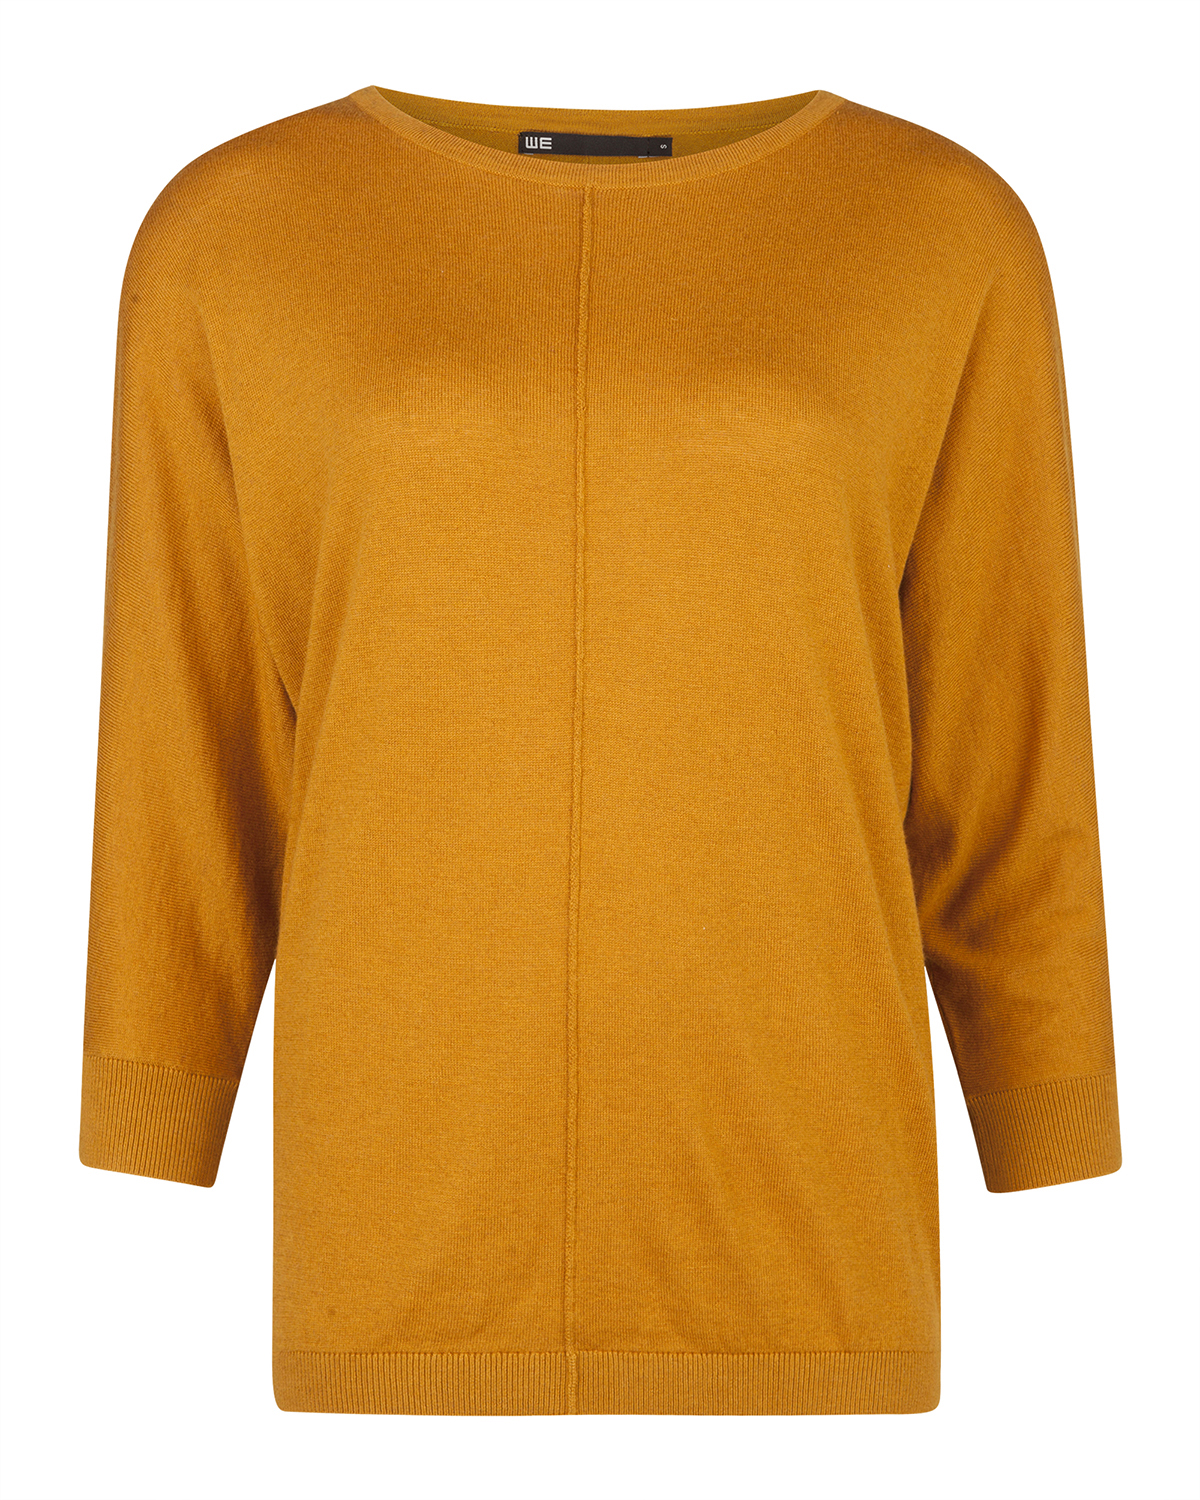 Truien Voor Dames.Dames Oversized Knit Trui 79354196 We Fashion